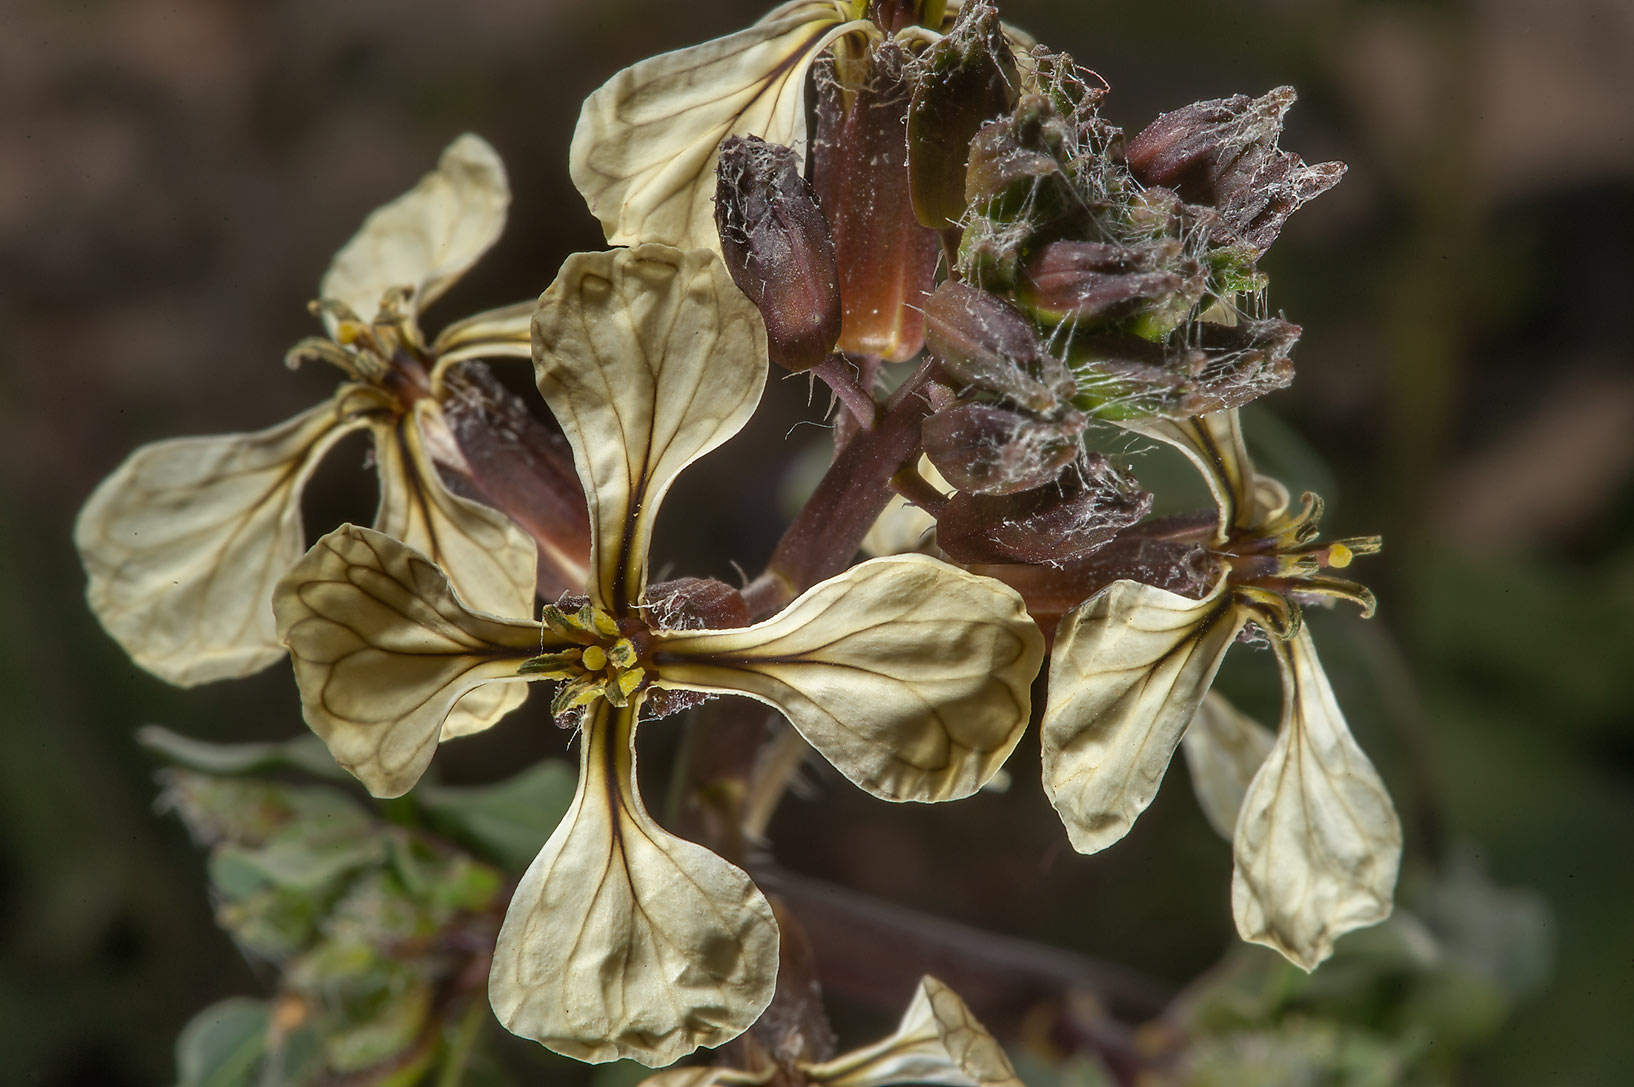 Close up of flowers of Eruca vesicaria (rocket...depression near Dukhan Highway. Qatar